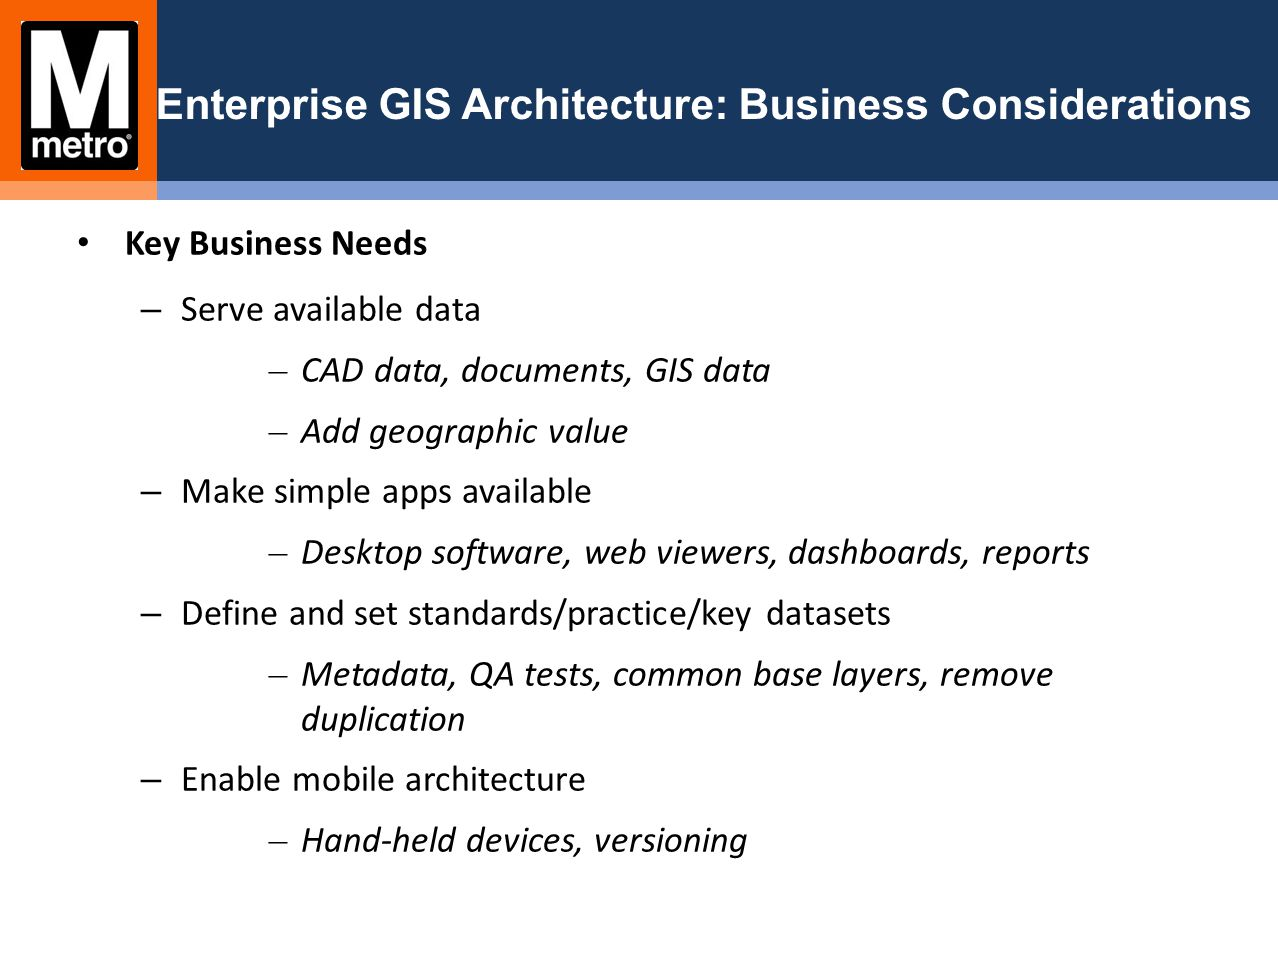 Enterprise GIS Architecture: Business Considerations